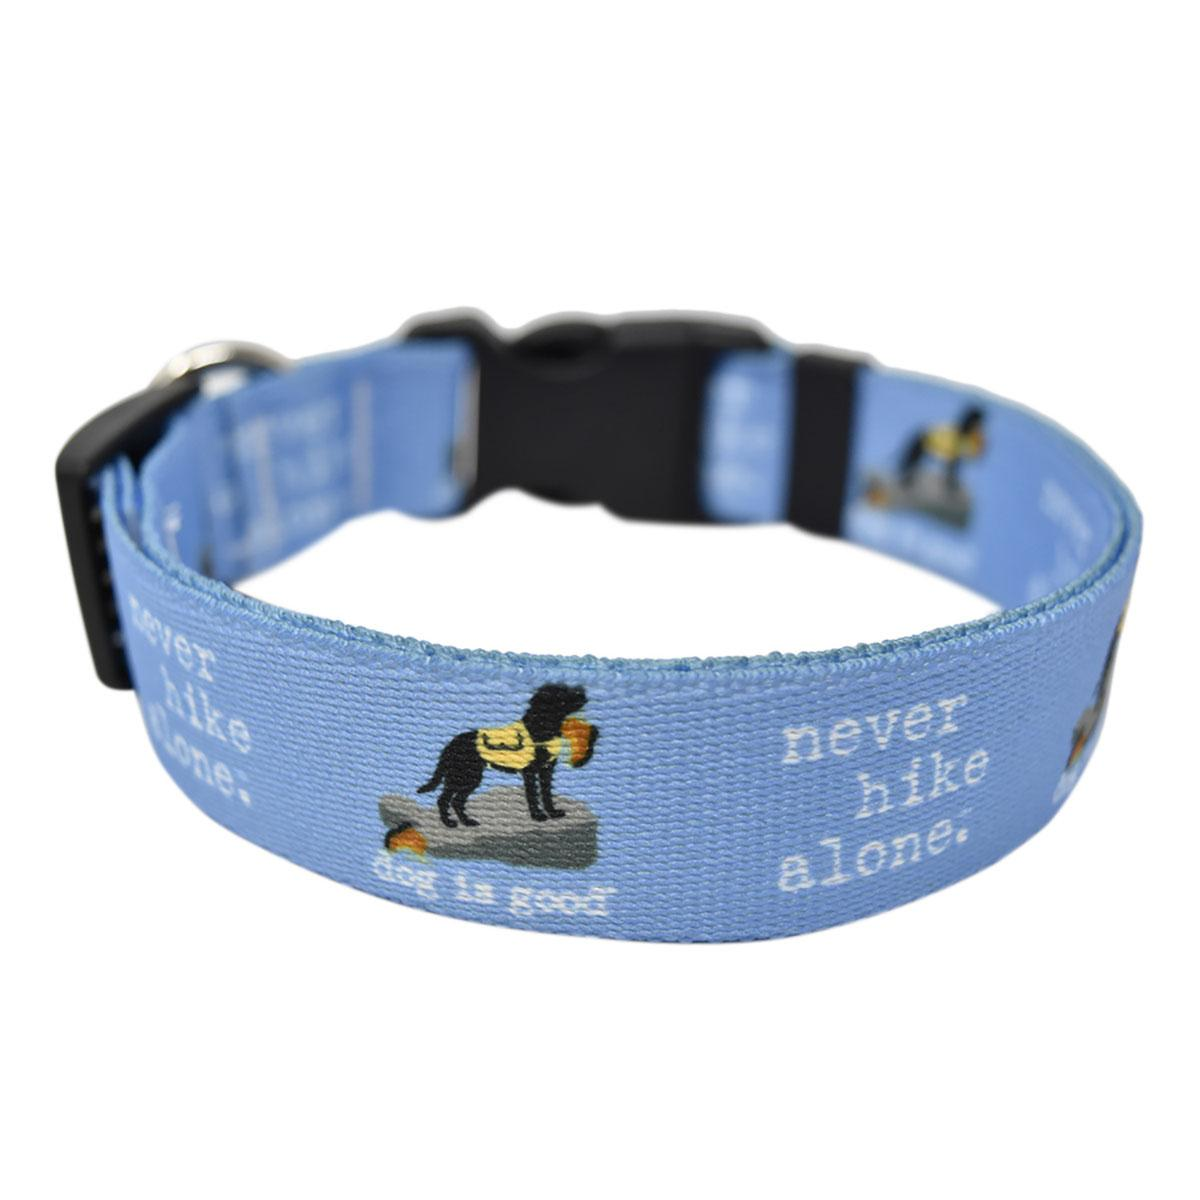 Never Hike Alone Dog Collar and Leash Collection by Dog is Good